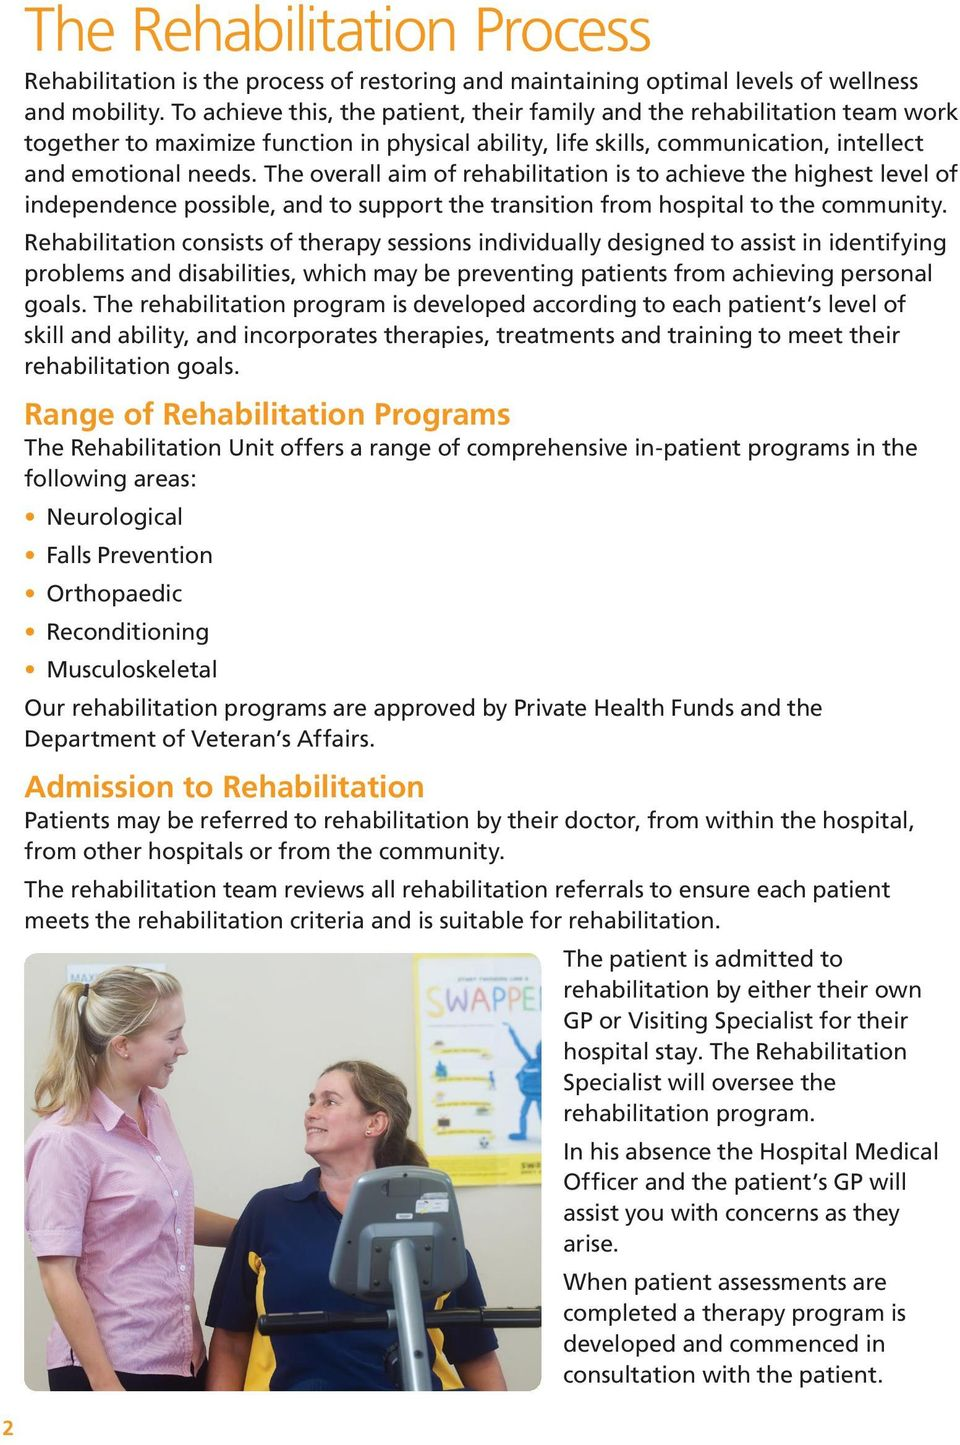 The overall aim of rehabilitation is to achieve the highest level of independence possible, and to support the transition from hospital to the community.